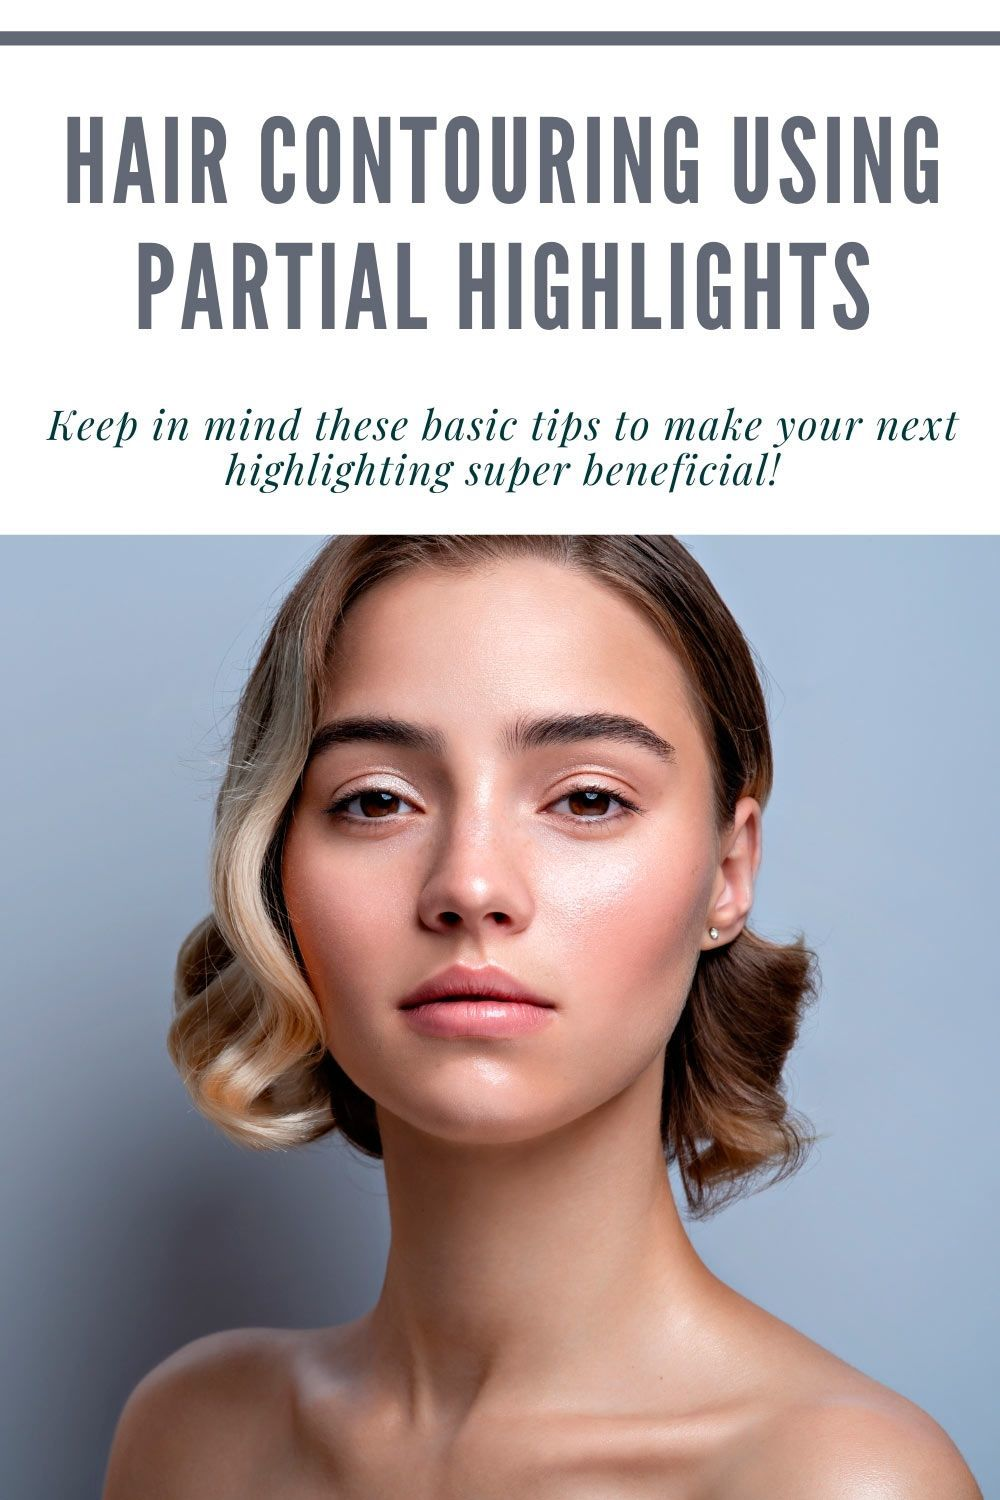 Hair Contouring Using Partial Highlights